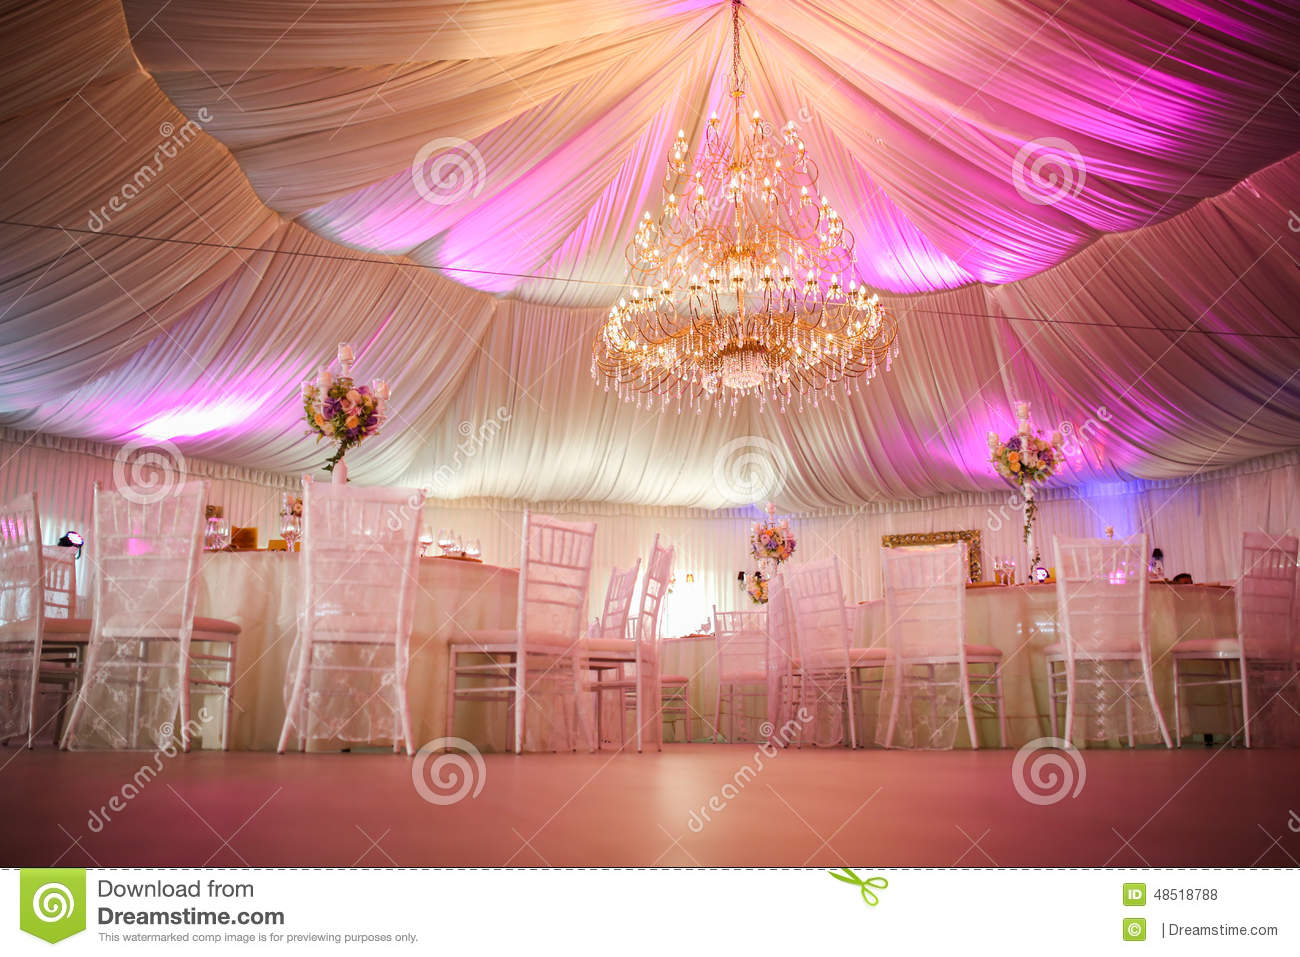 Wedding Interior Decoration Images Of Interior Of A Wedding Tent Decoration Ready For Guests